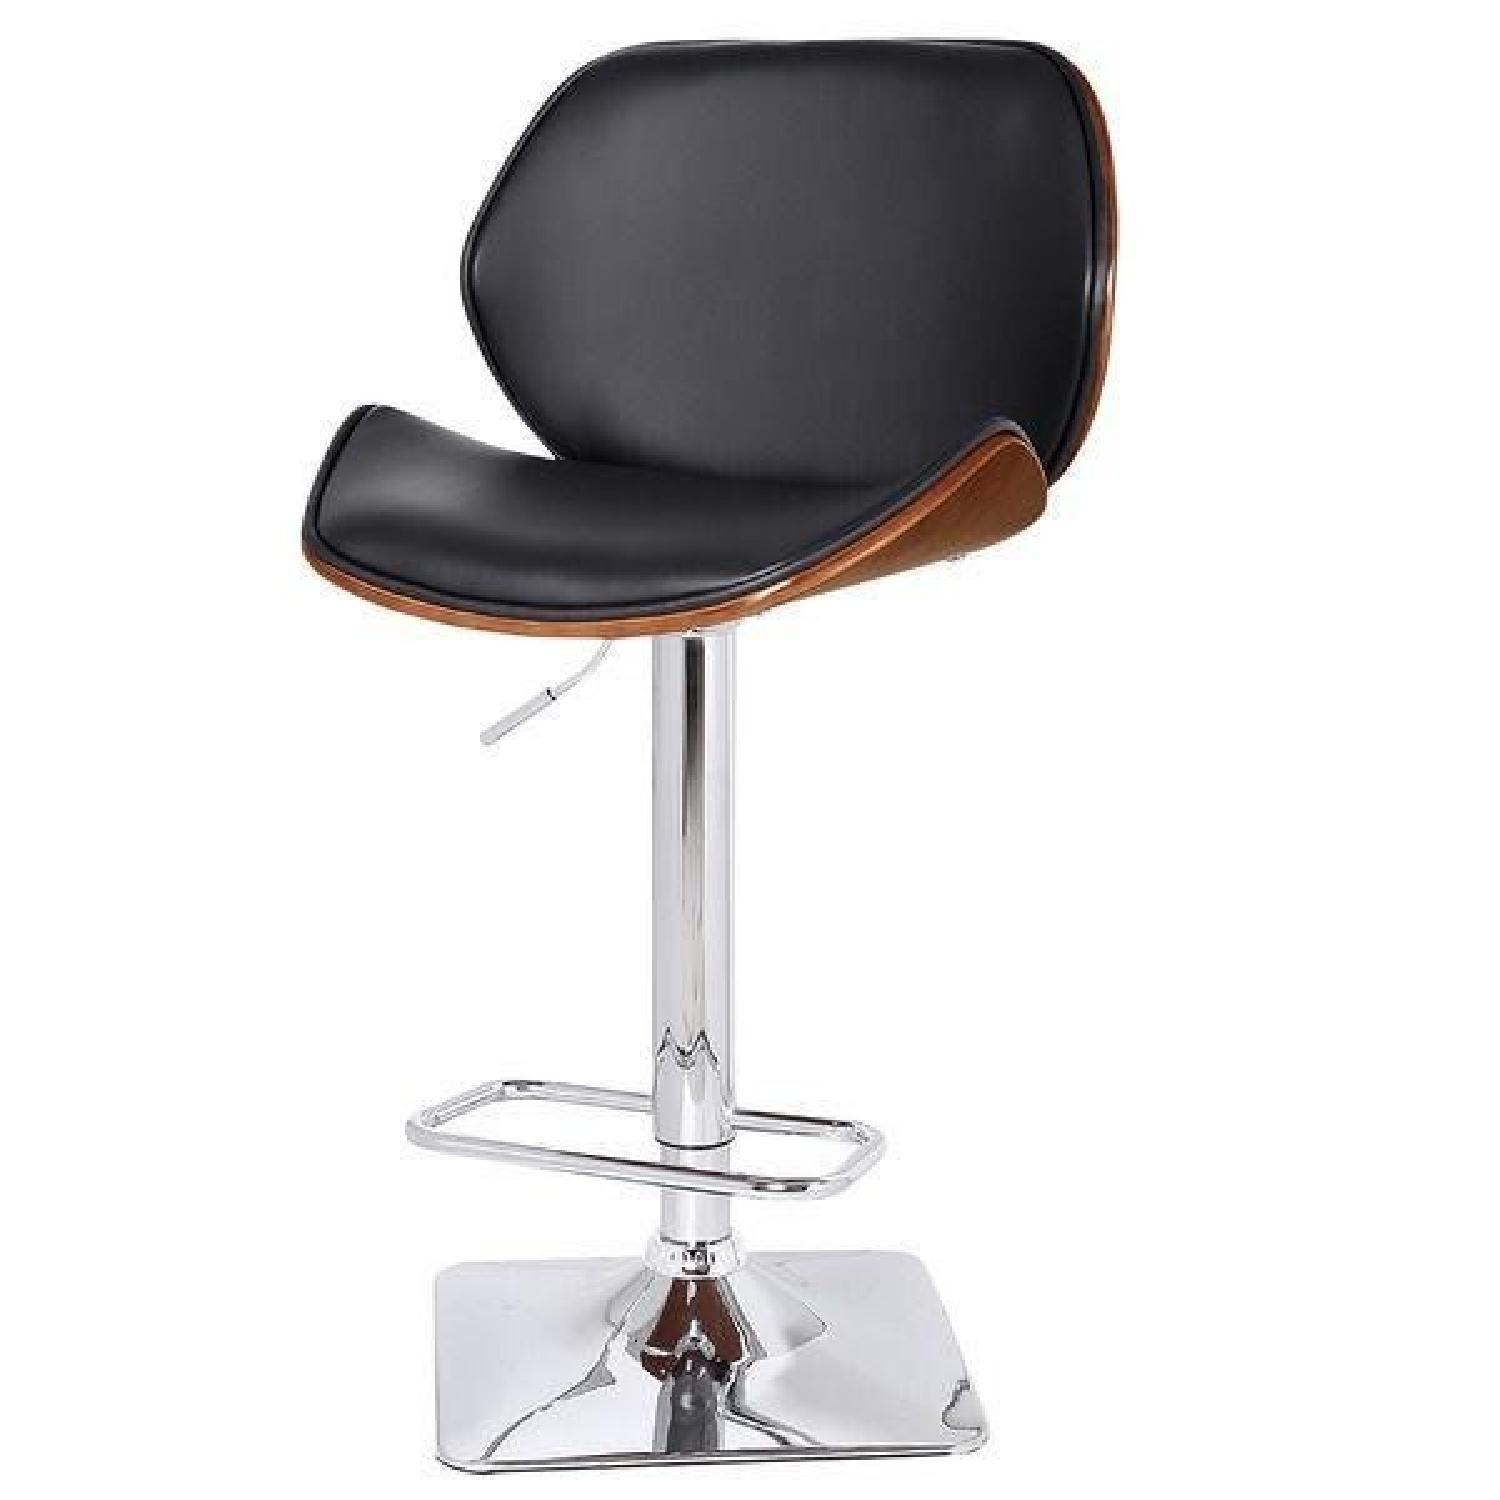 Adjustable Bar/Counter Height Stools - Pair - image-1